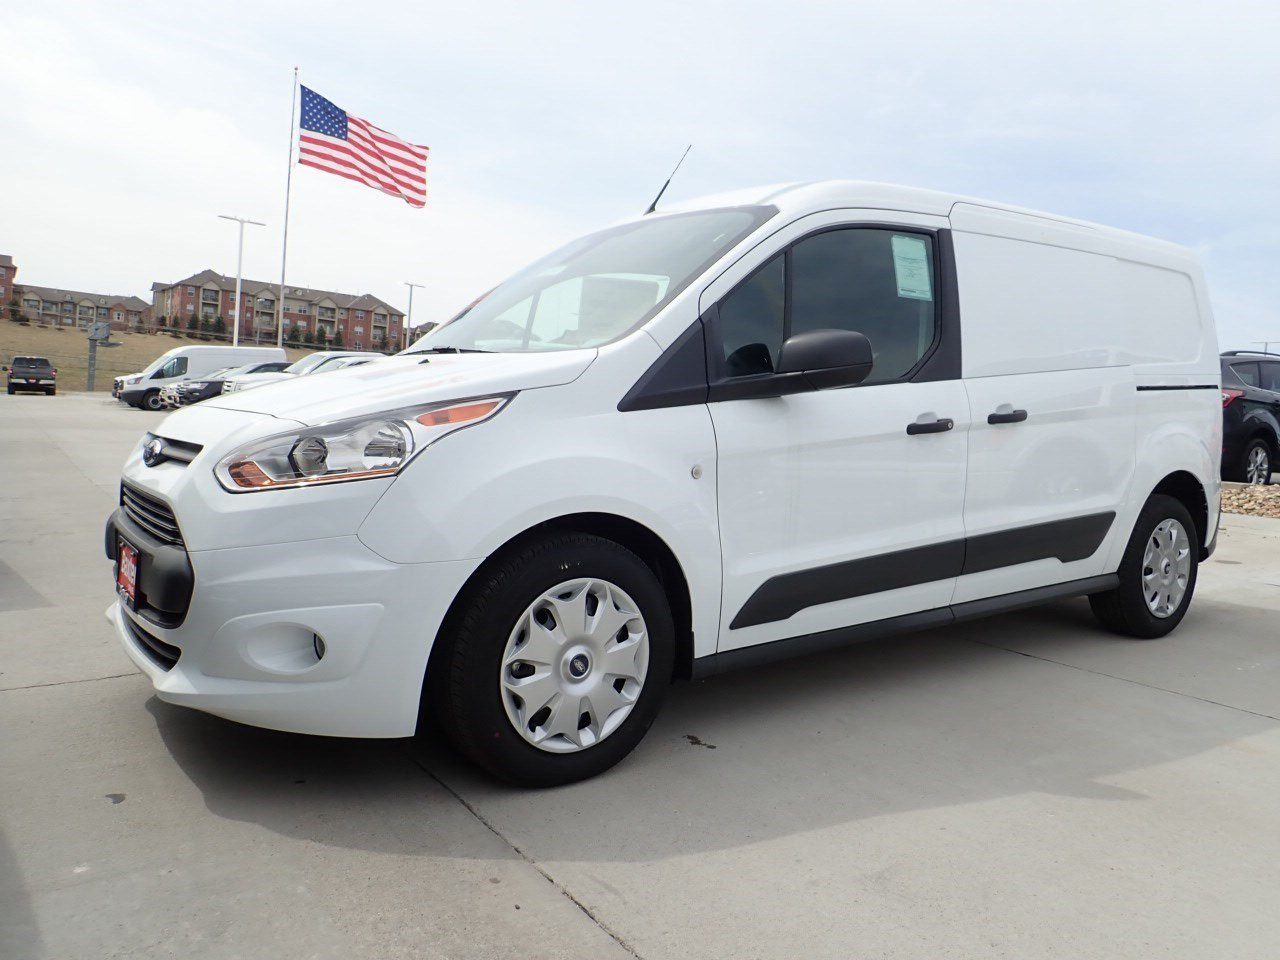 ford patrol wagon the alternative connect transit slide minivan gear crossover